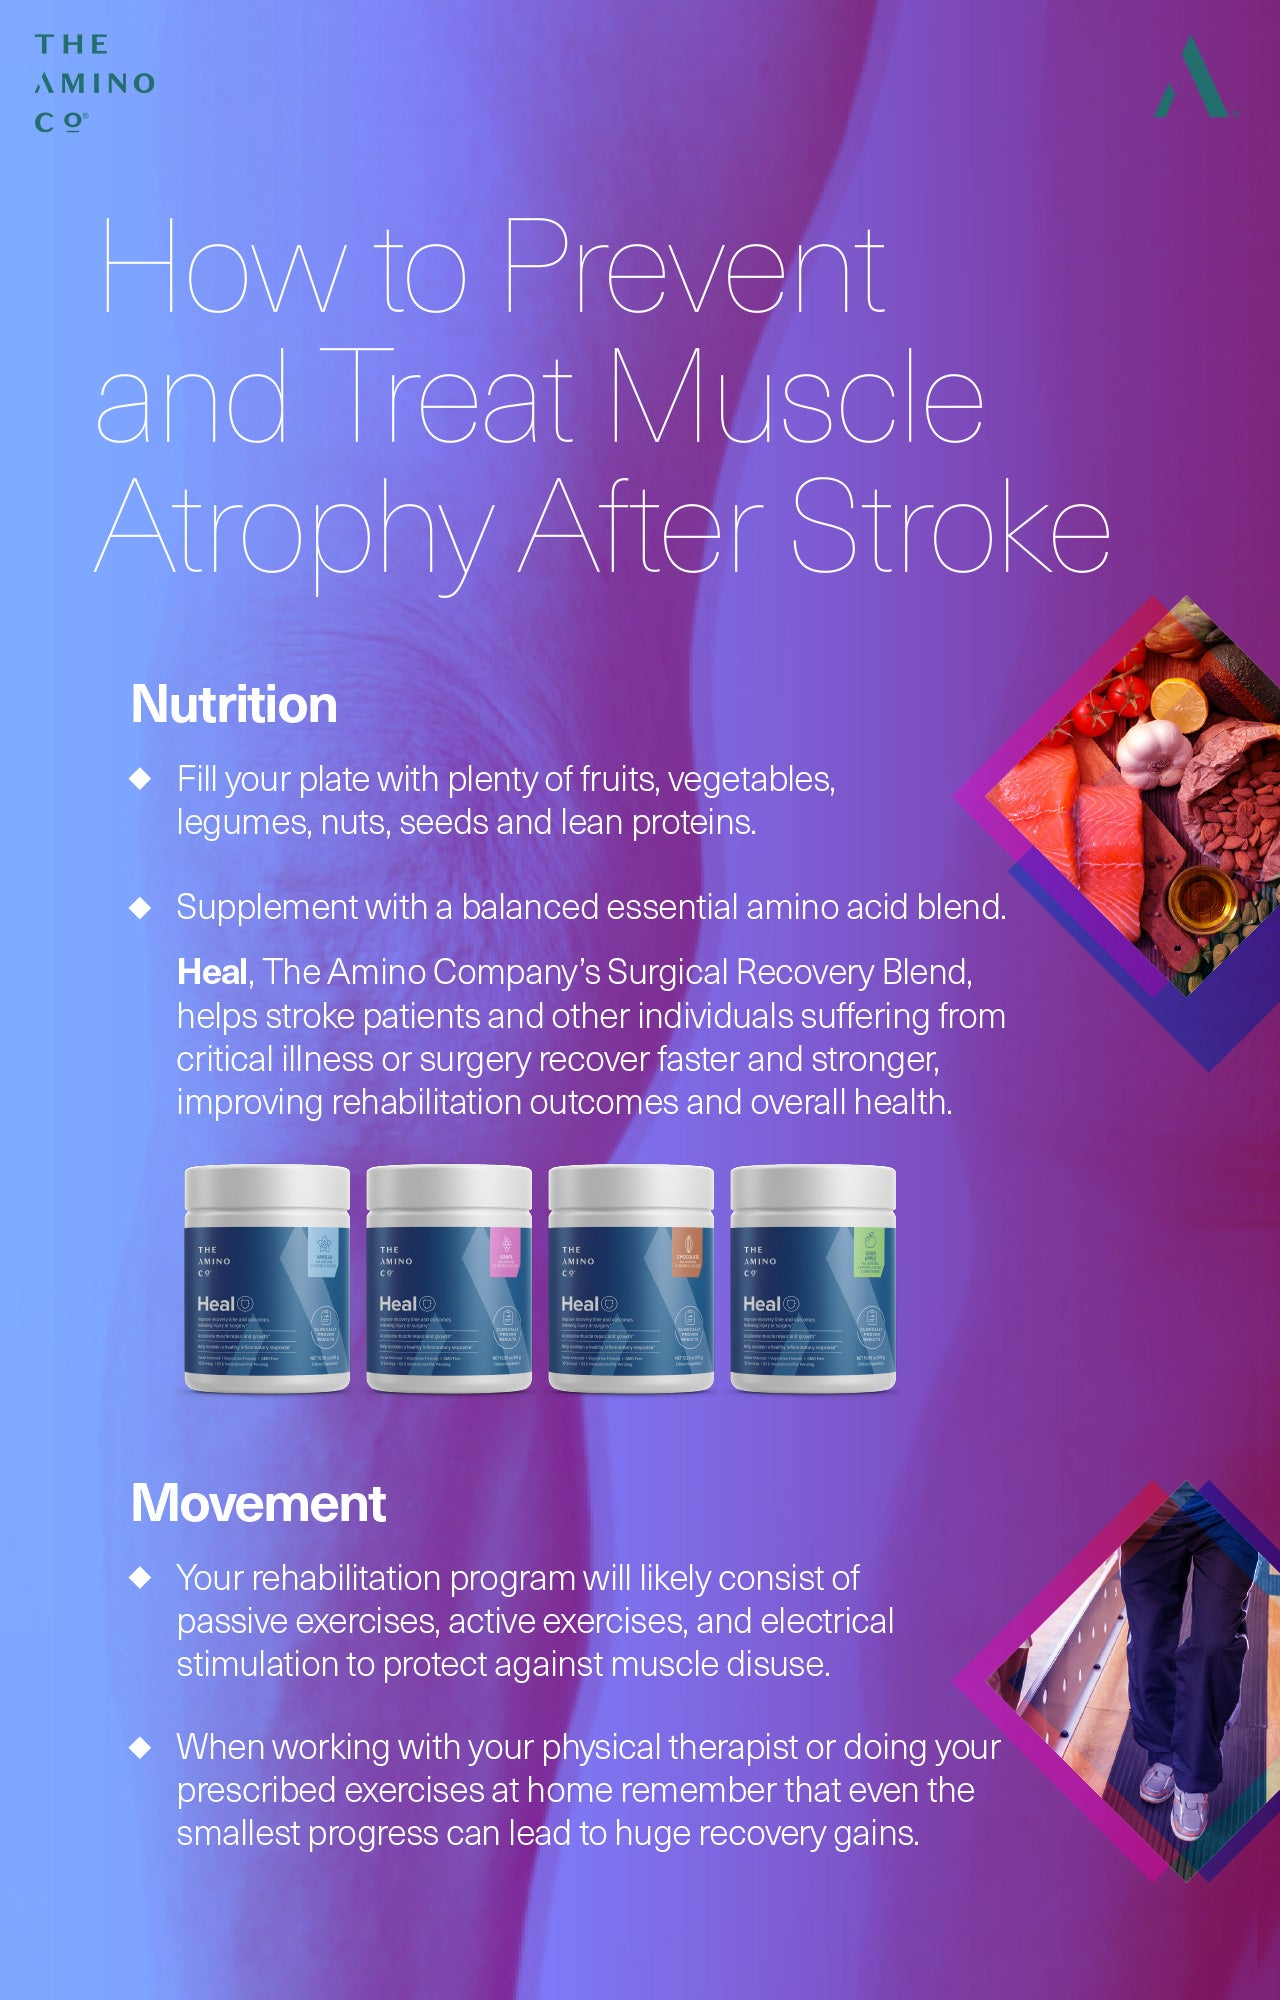 How to Prevent and Treat Muscle Atrophy After Stroke